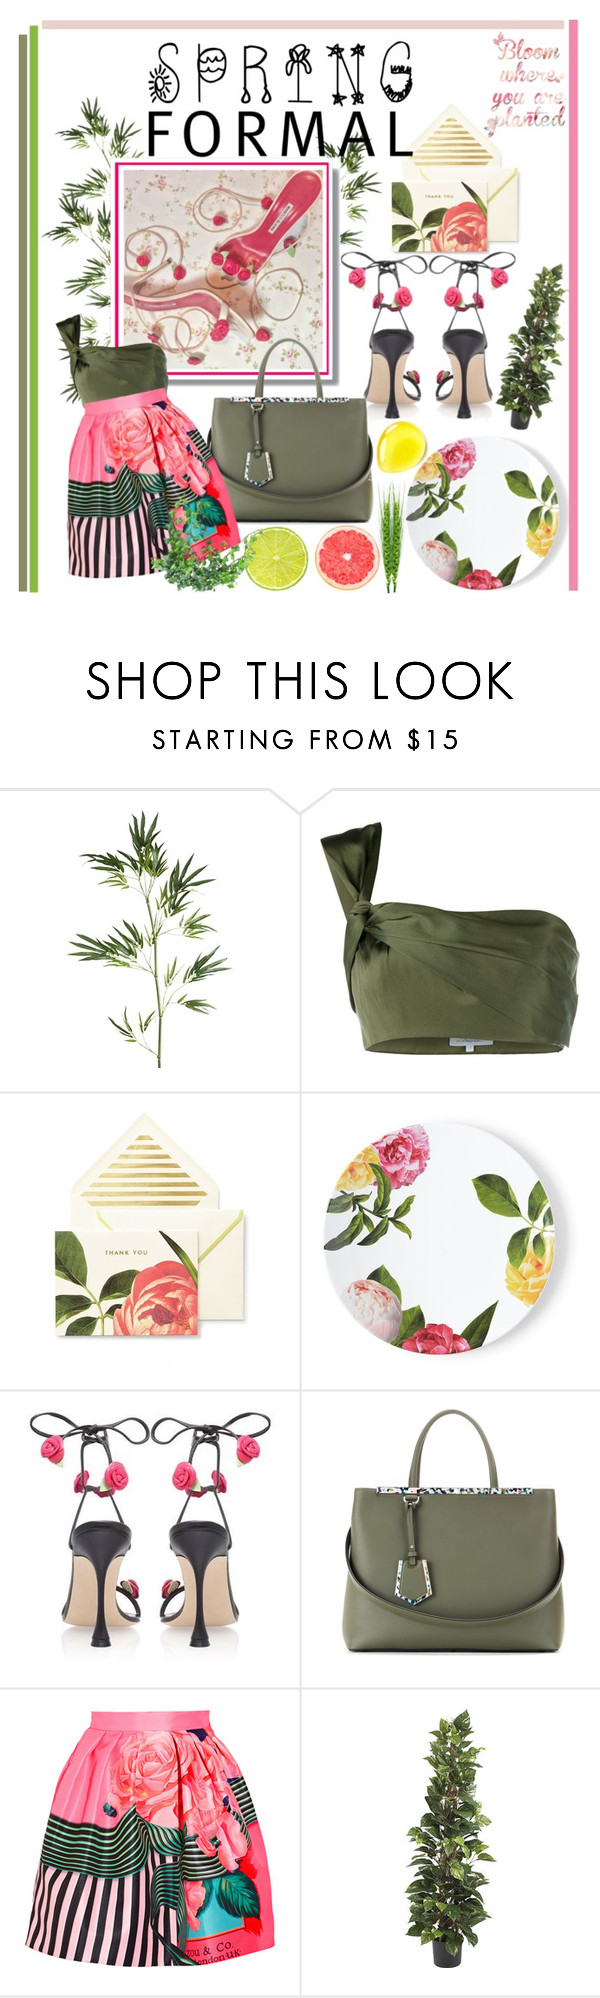 """""""Xafiore"""" by rivlyb ❤ liked on Polyvore featuring Pier 1 Imports, 3.1 Phillip Lim, Kate Spade, Fendi, Mary Katrantzou, Nearly Natural, floral, manoloblahnik and summer16"""